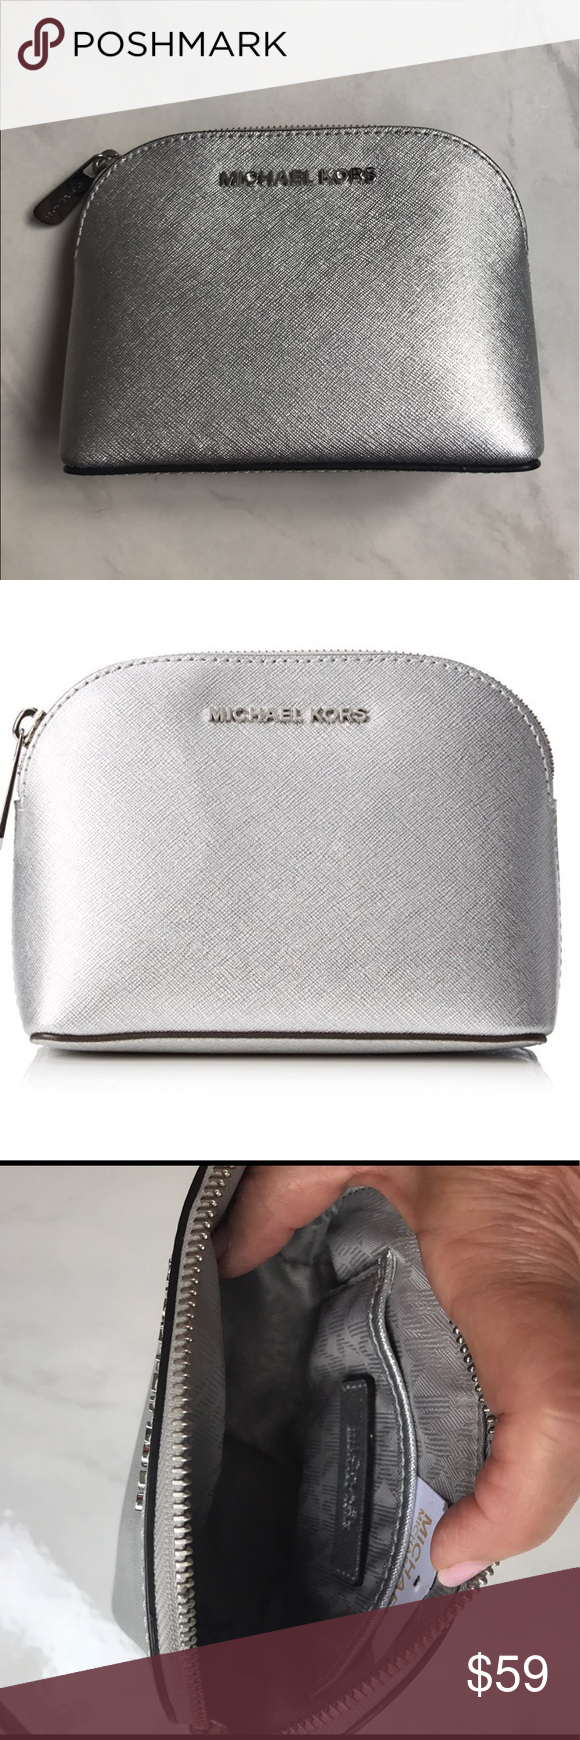 87bd6381d567 🆕Michael Kors  Cindy  Silver Leather Travel Pouch New Never used Small  Saffiano Leather